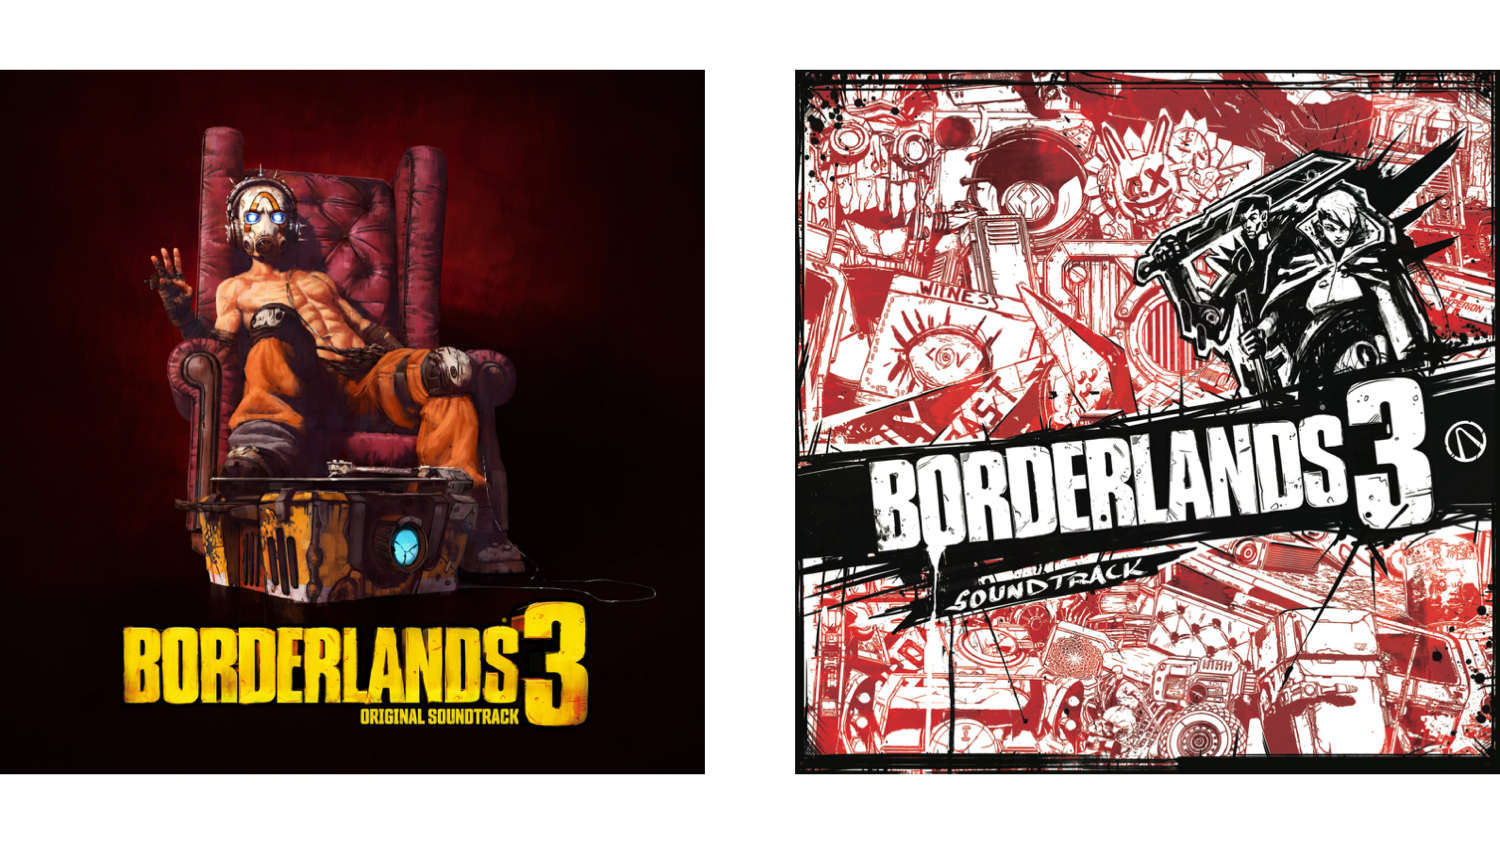 Borderlands 3 vinyl by Laced Records